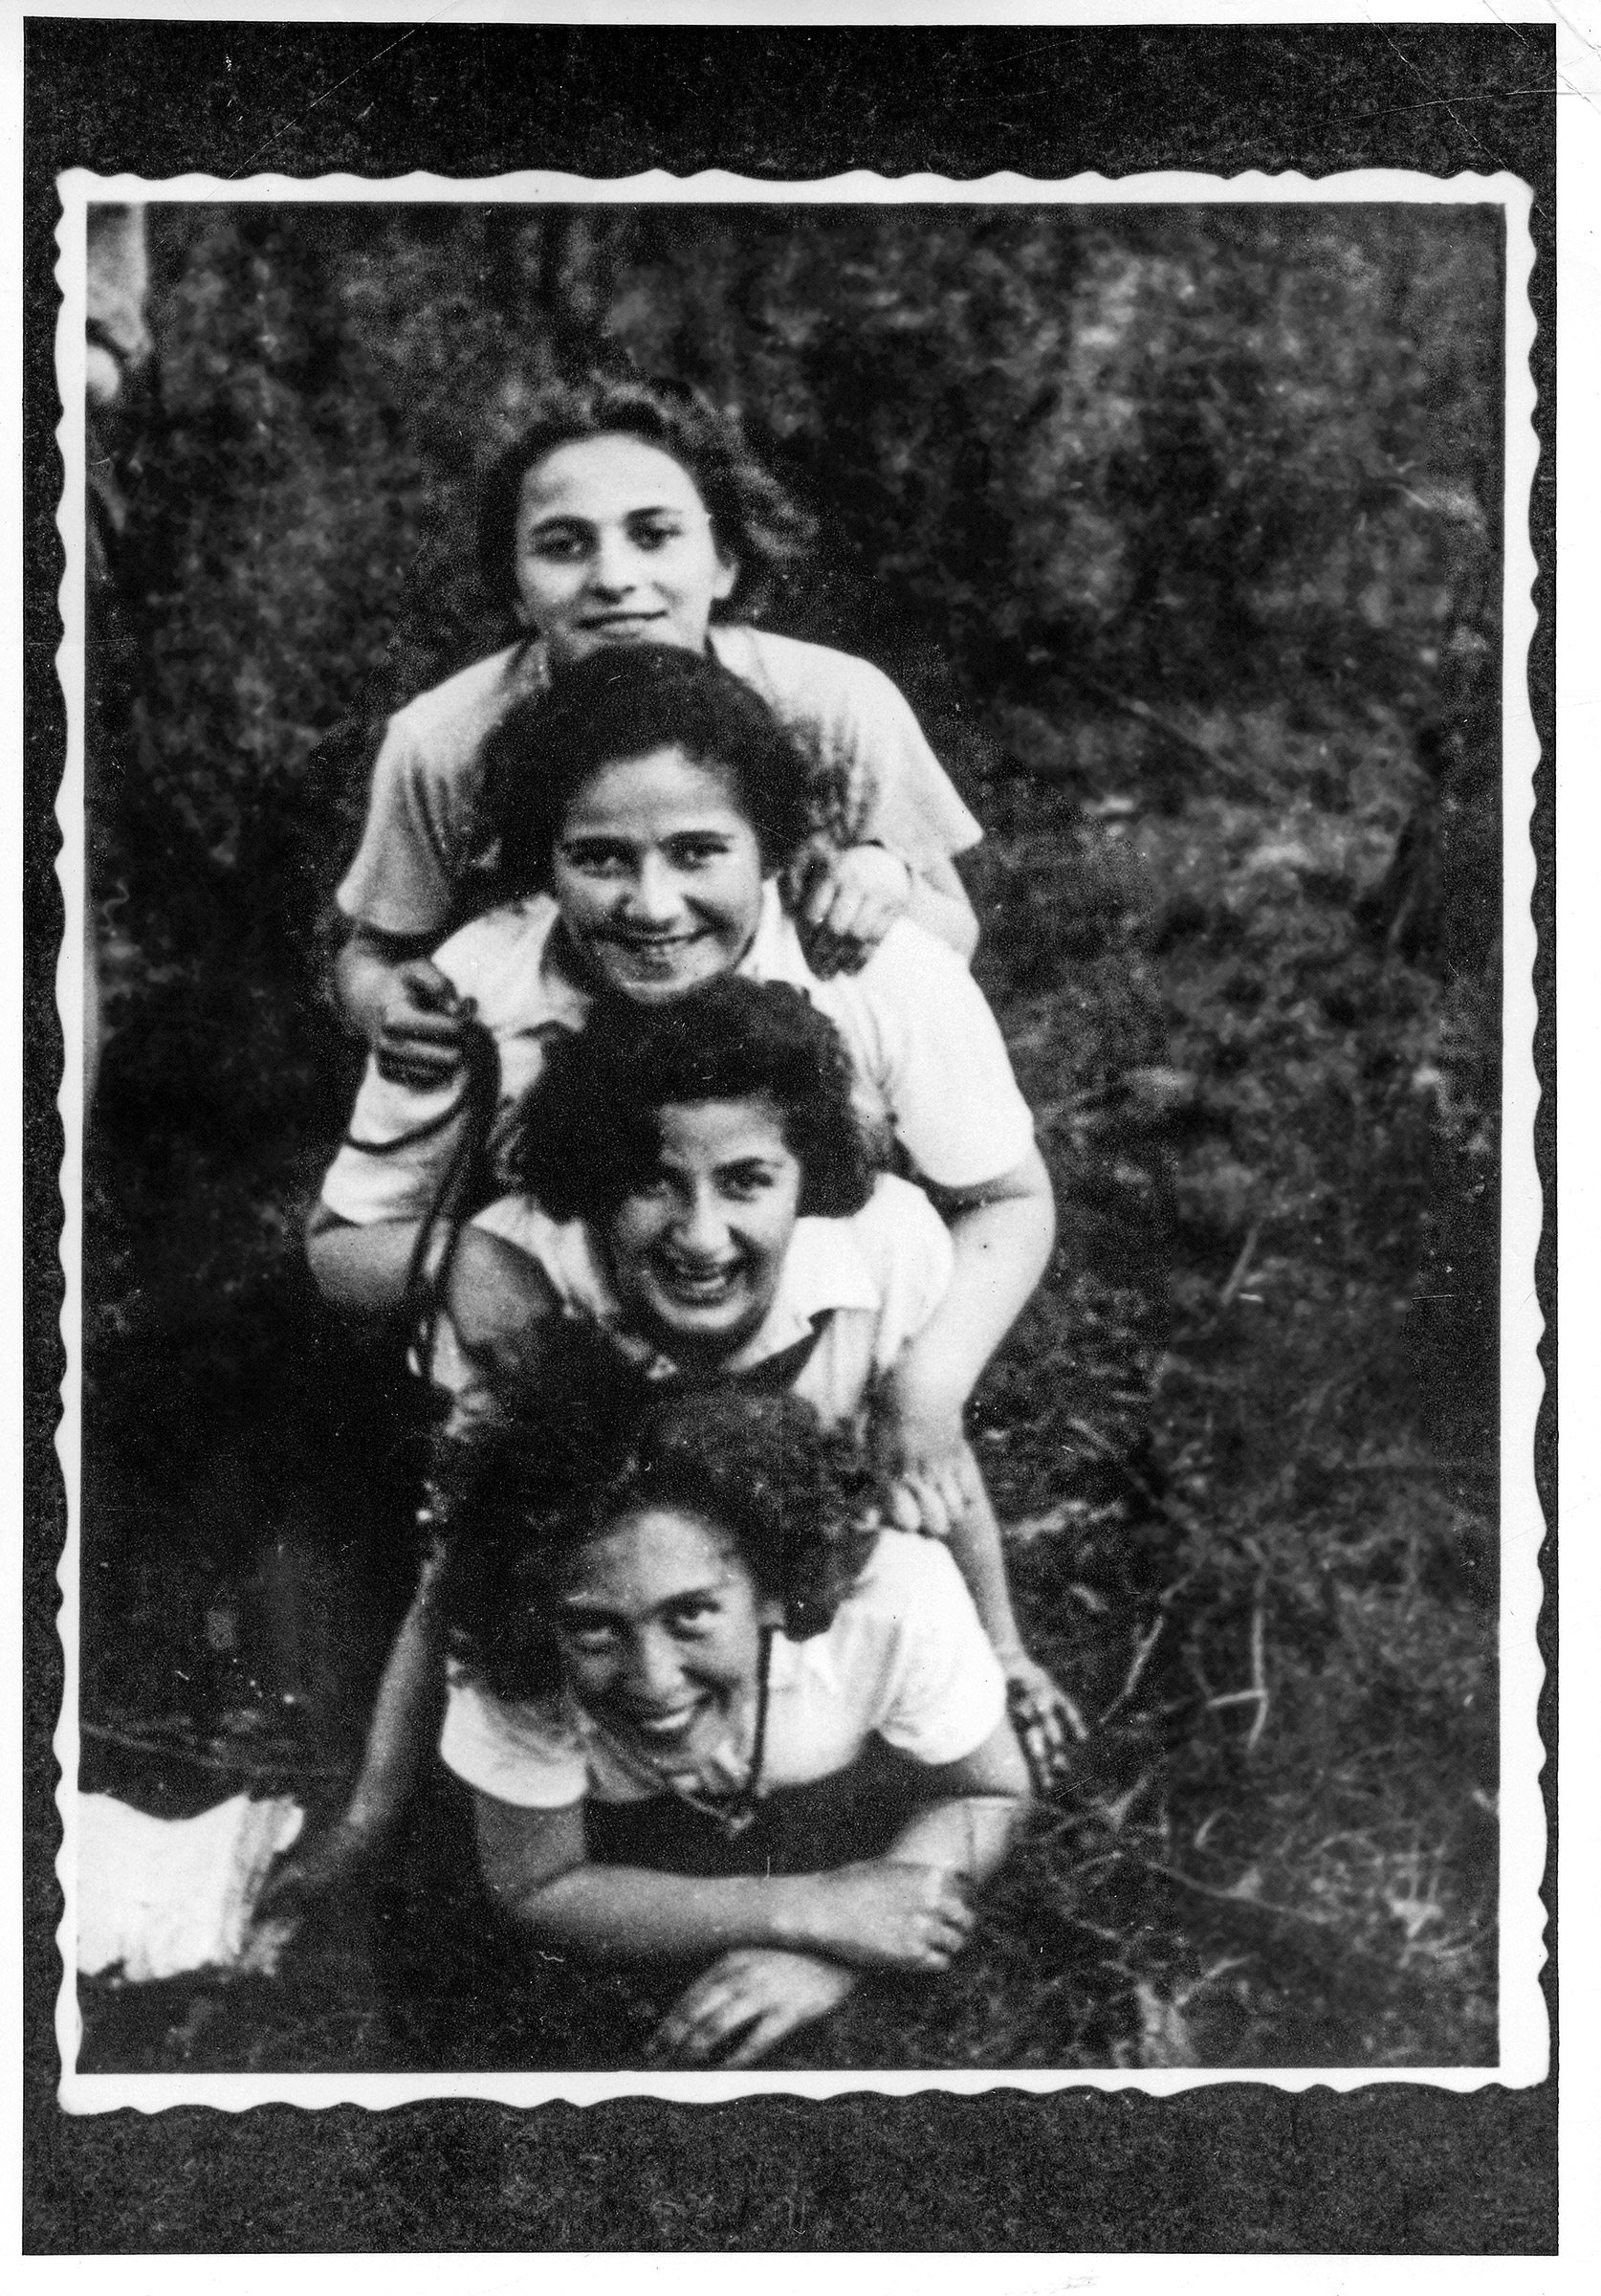 Members of The Young Guard in Włocławek, Poland, during Lag BaOmer, 1937. Tosia Altman is at the bottom.